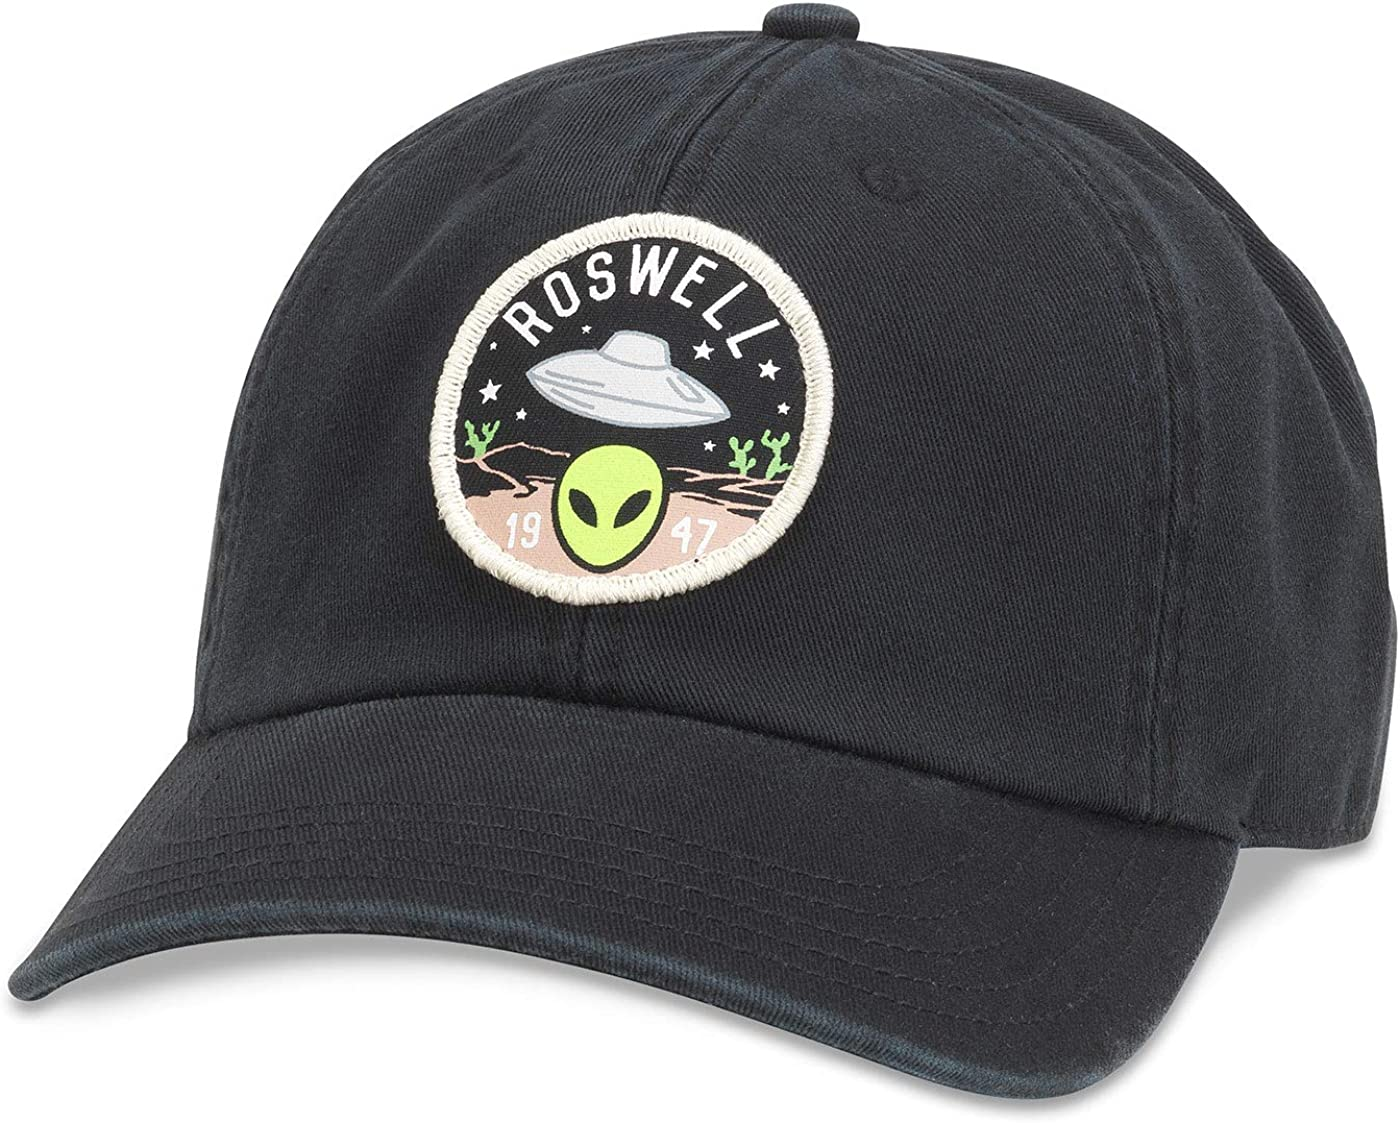 AMERICAN NEEDLE Rosewell Hepcat Curved Brim Adjustable Hat Black